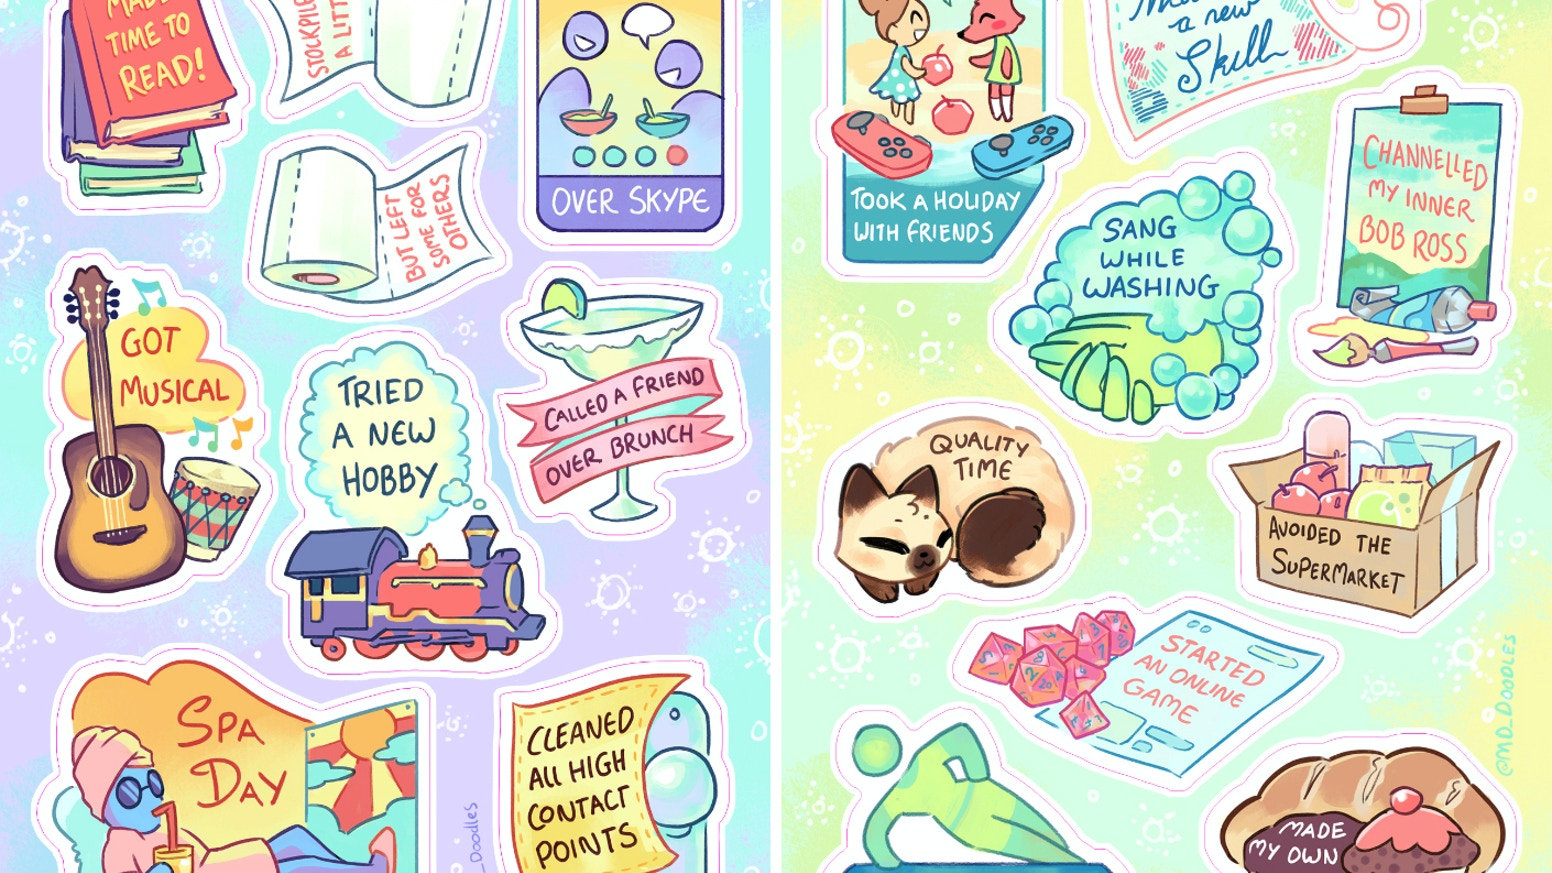 Self Care stickers to brighten up your Self-Isolation. Turn off the news, do something nice for yourself.